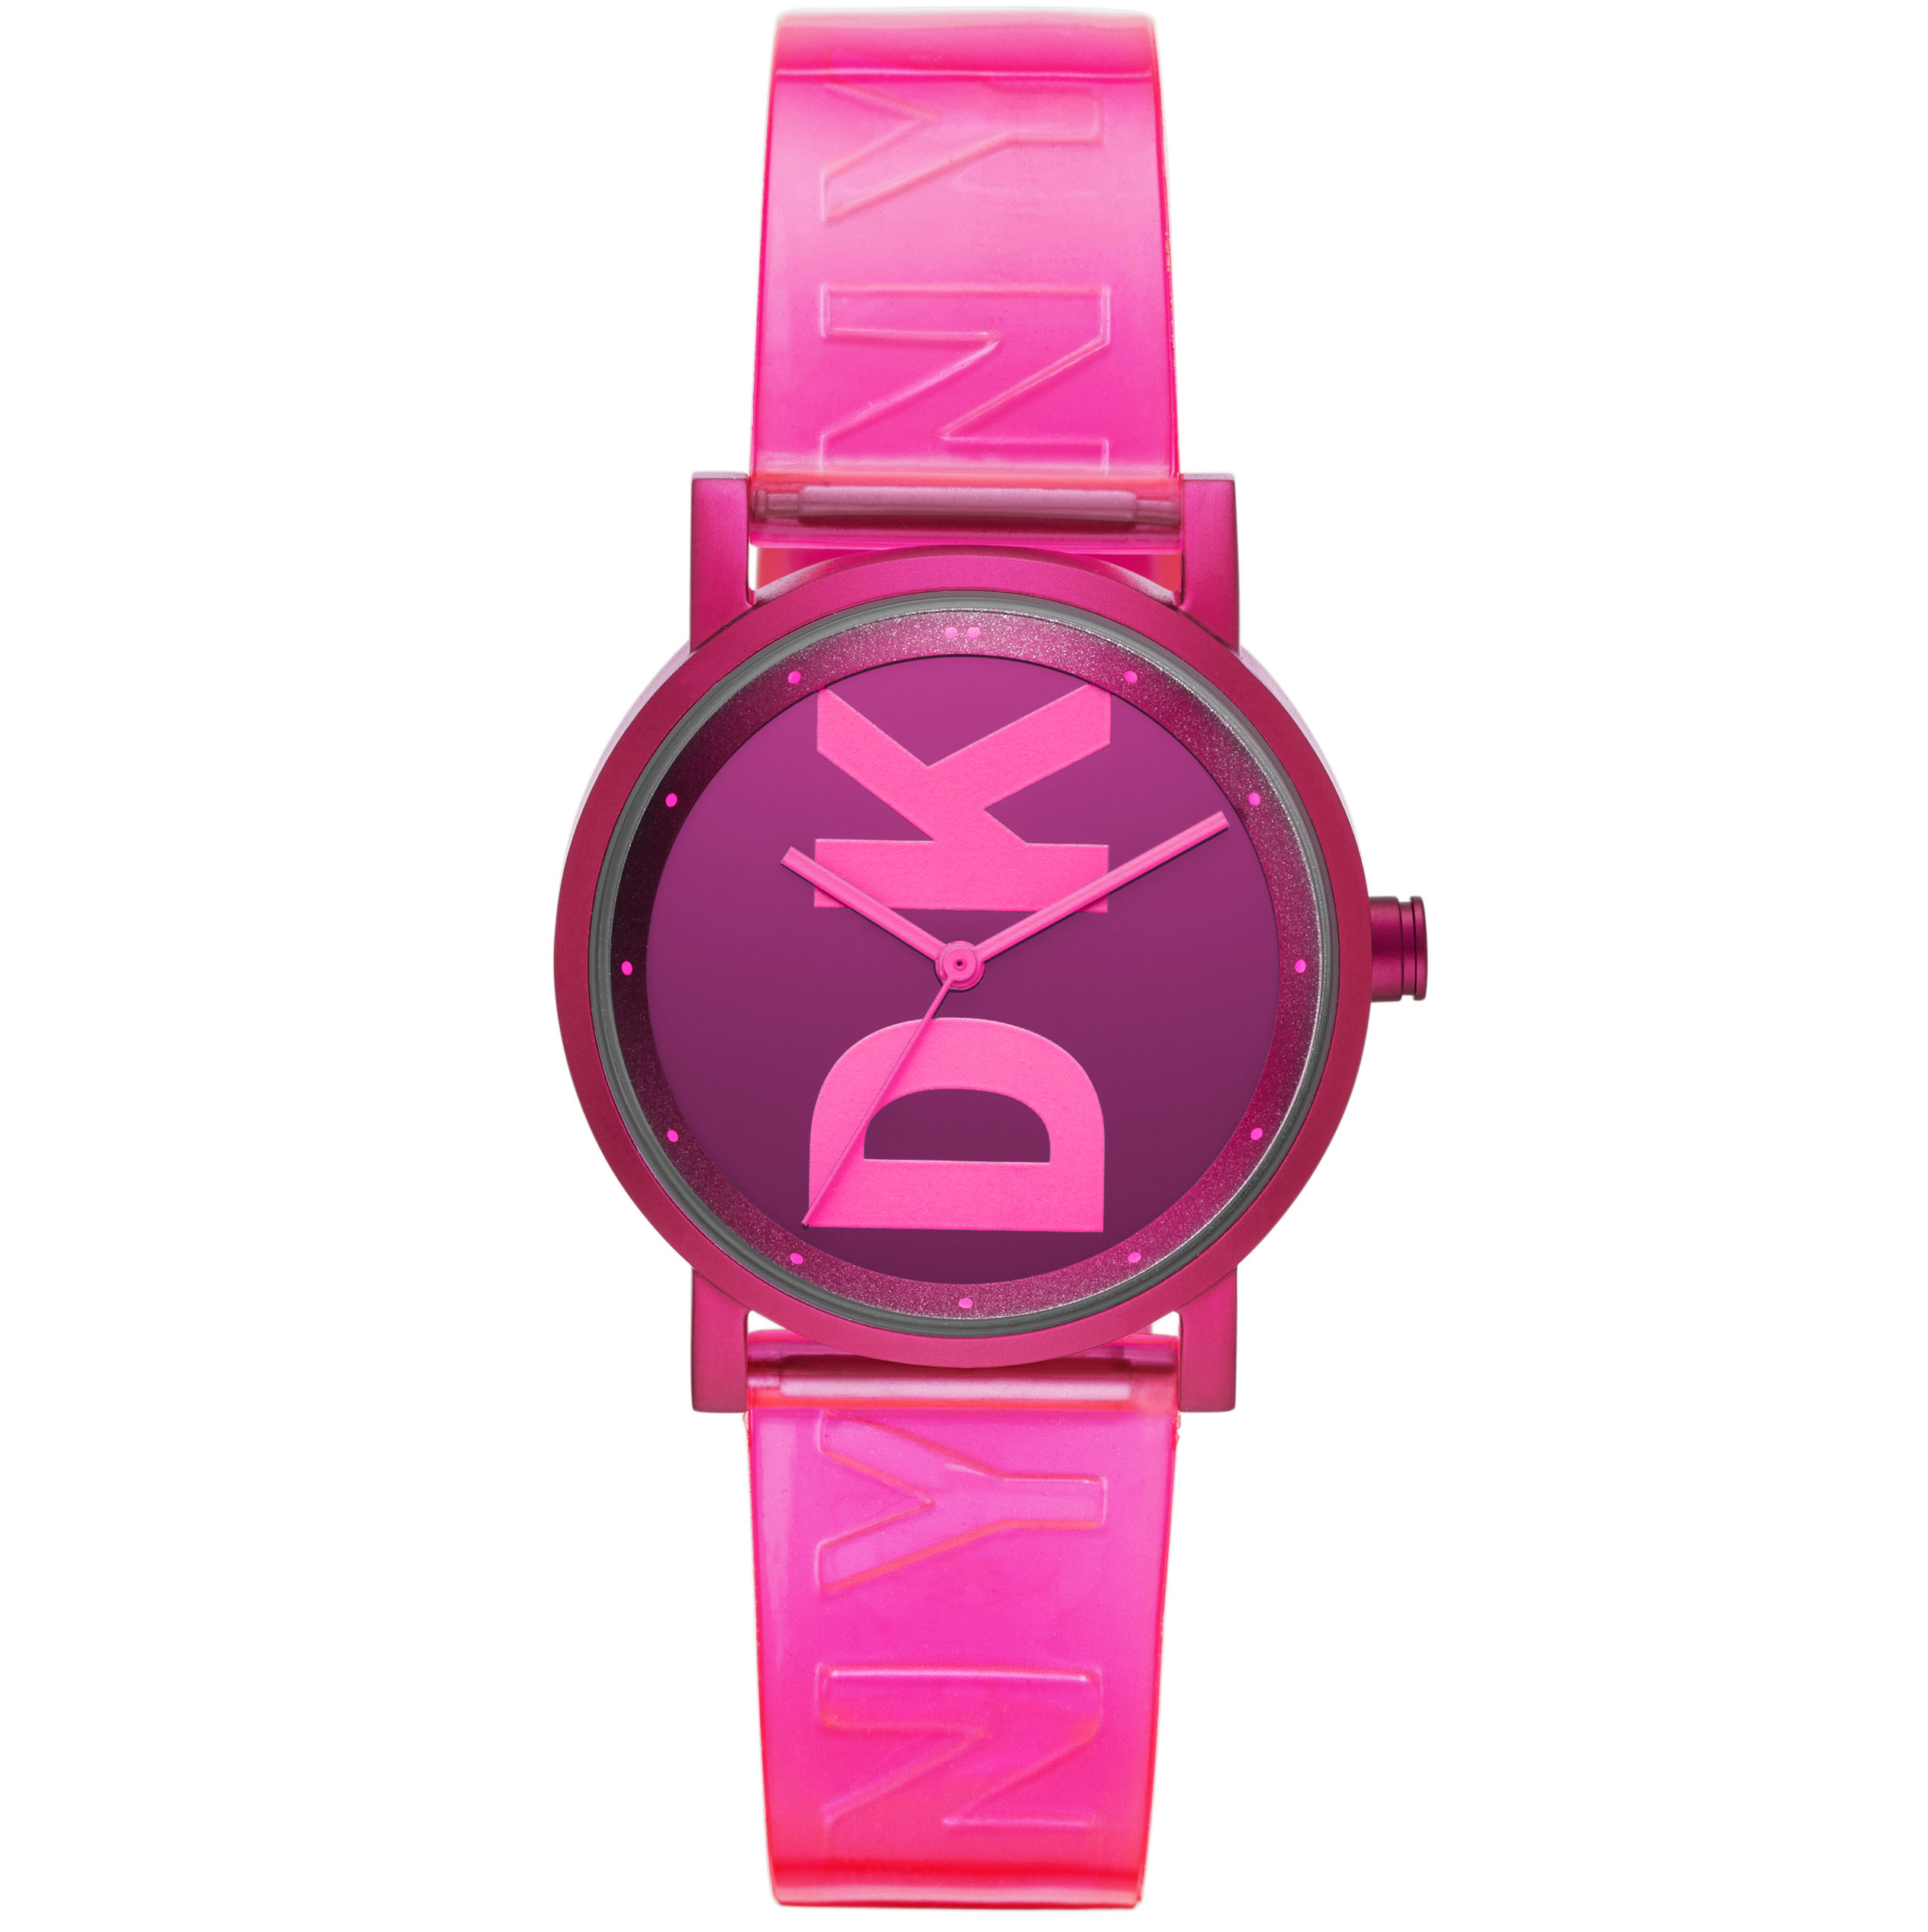 DKNY Ladies Aluminium Pink Strap Watch